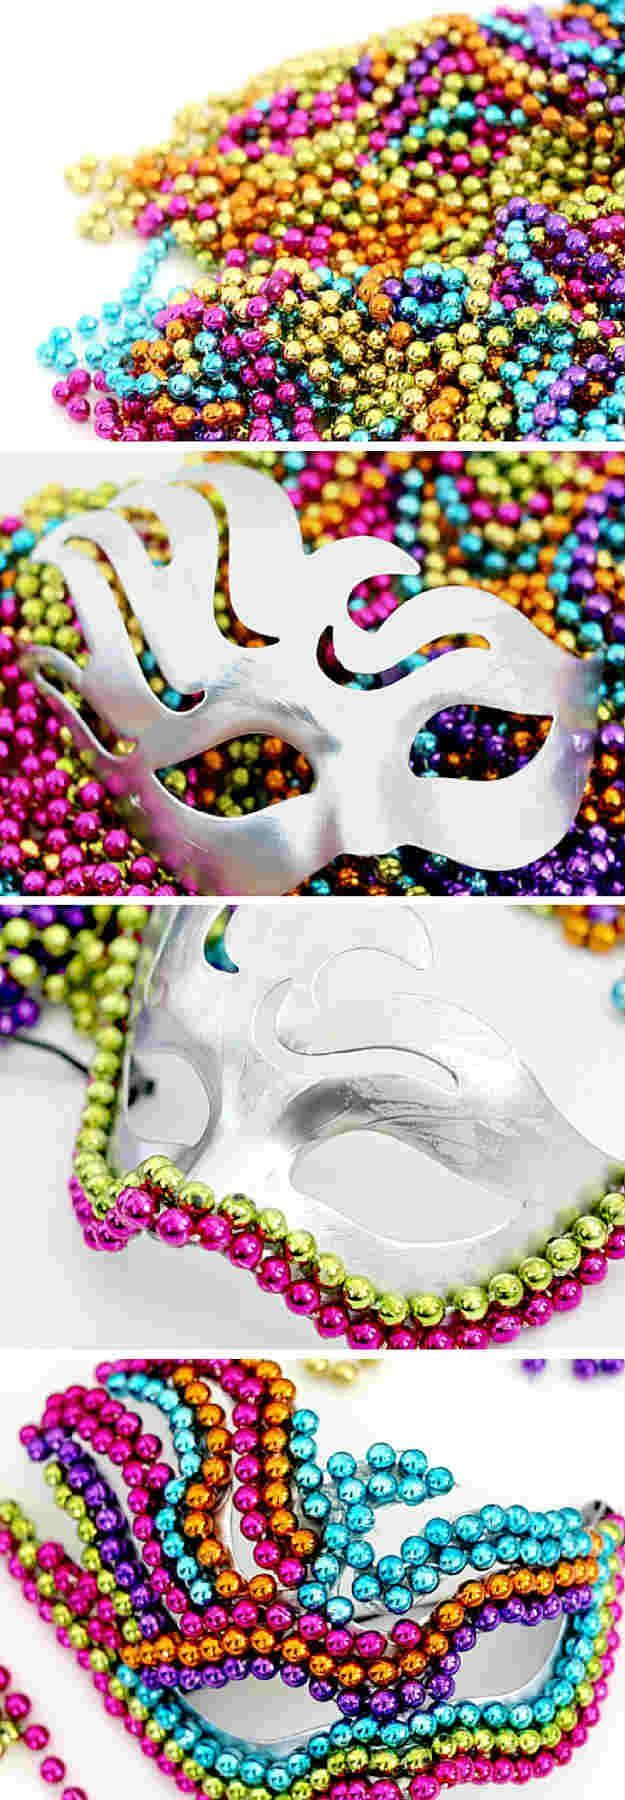 images have in places by your orleans donation several where can to are bead mardi here put dermansky gras via recycling corbis after julie carnival photo curbed you if new beads locations them donate no getty